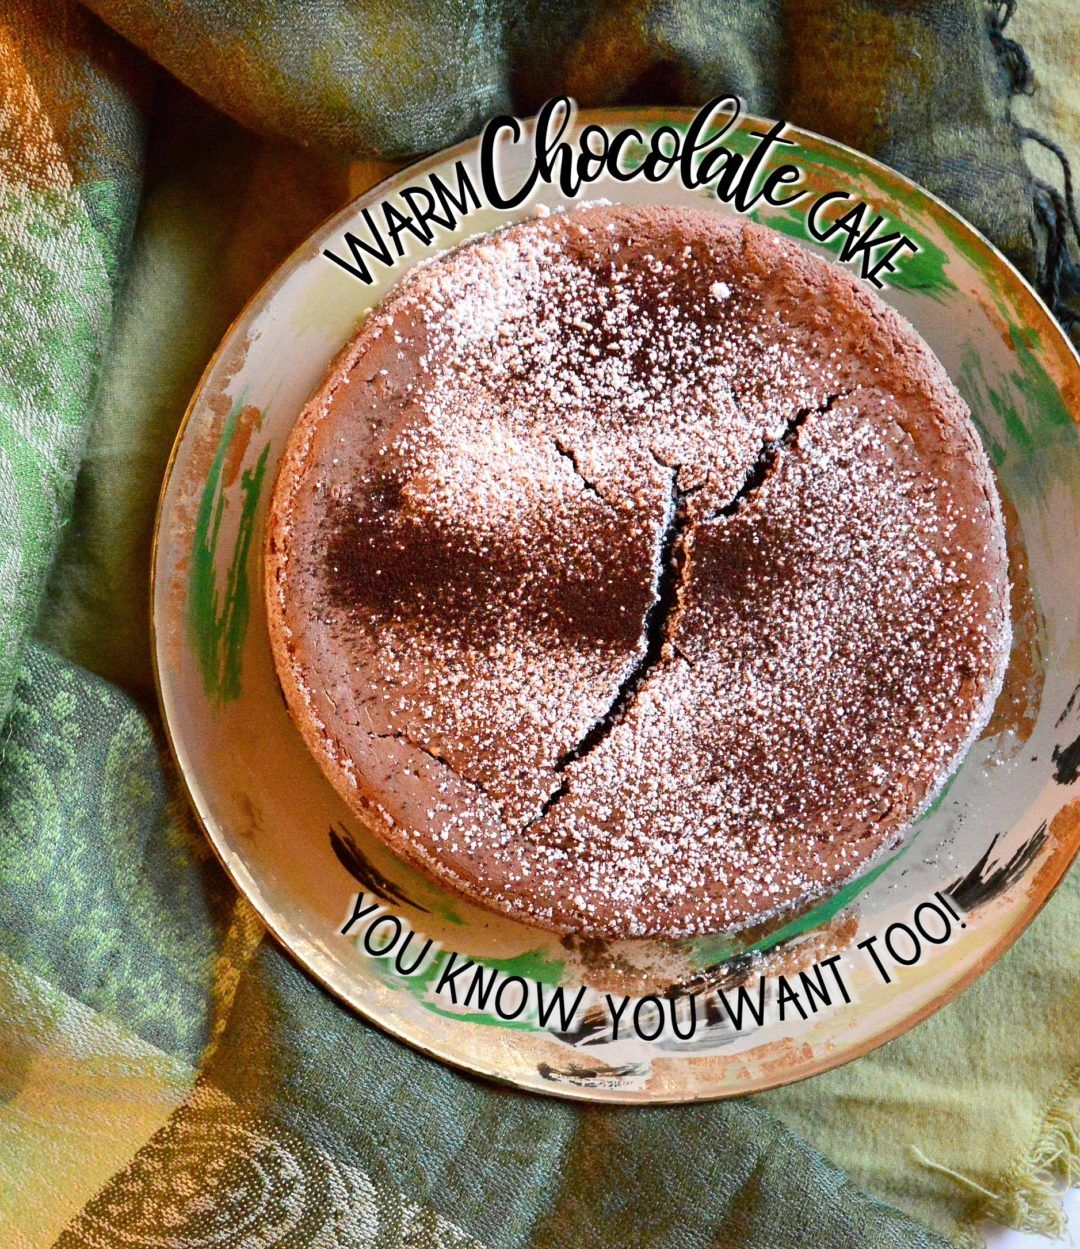 Warm Chocolate Cake #Choctoberfest with Imperial Sugar